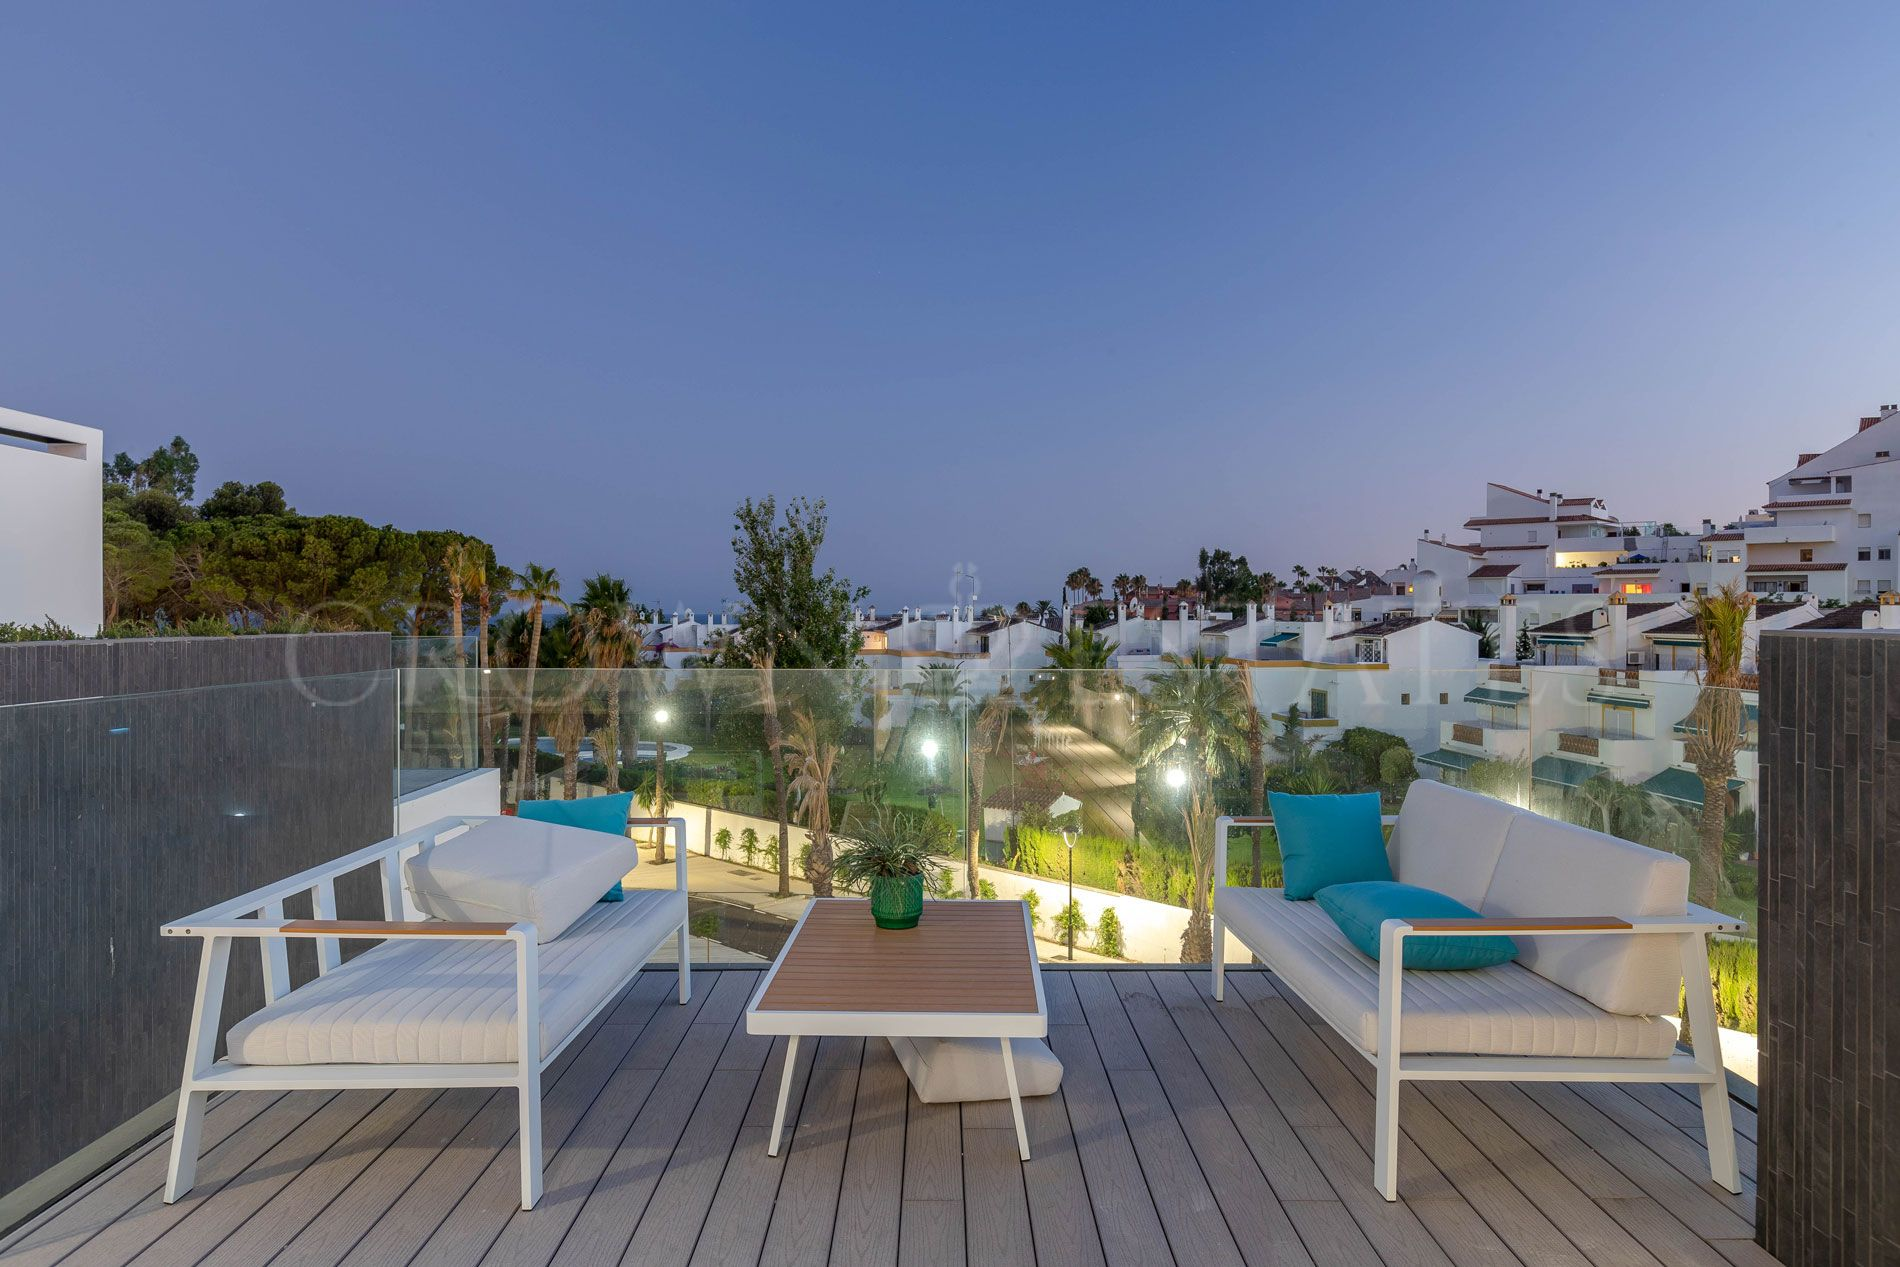 50 state of-the-art townhouses of three, four and five bedrooms in the mostexclusive part of the Estepona's western outskirts.